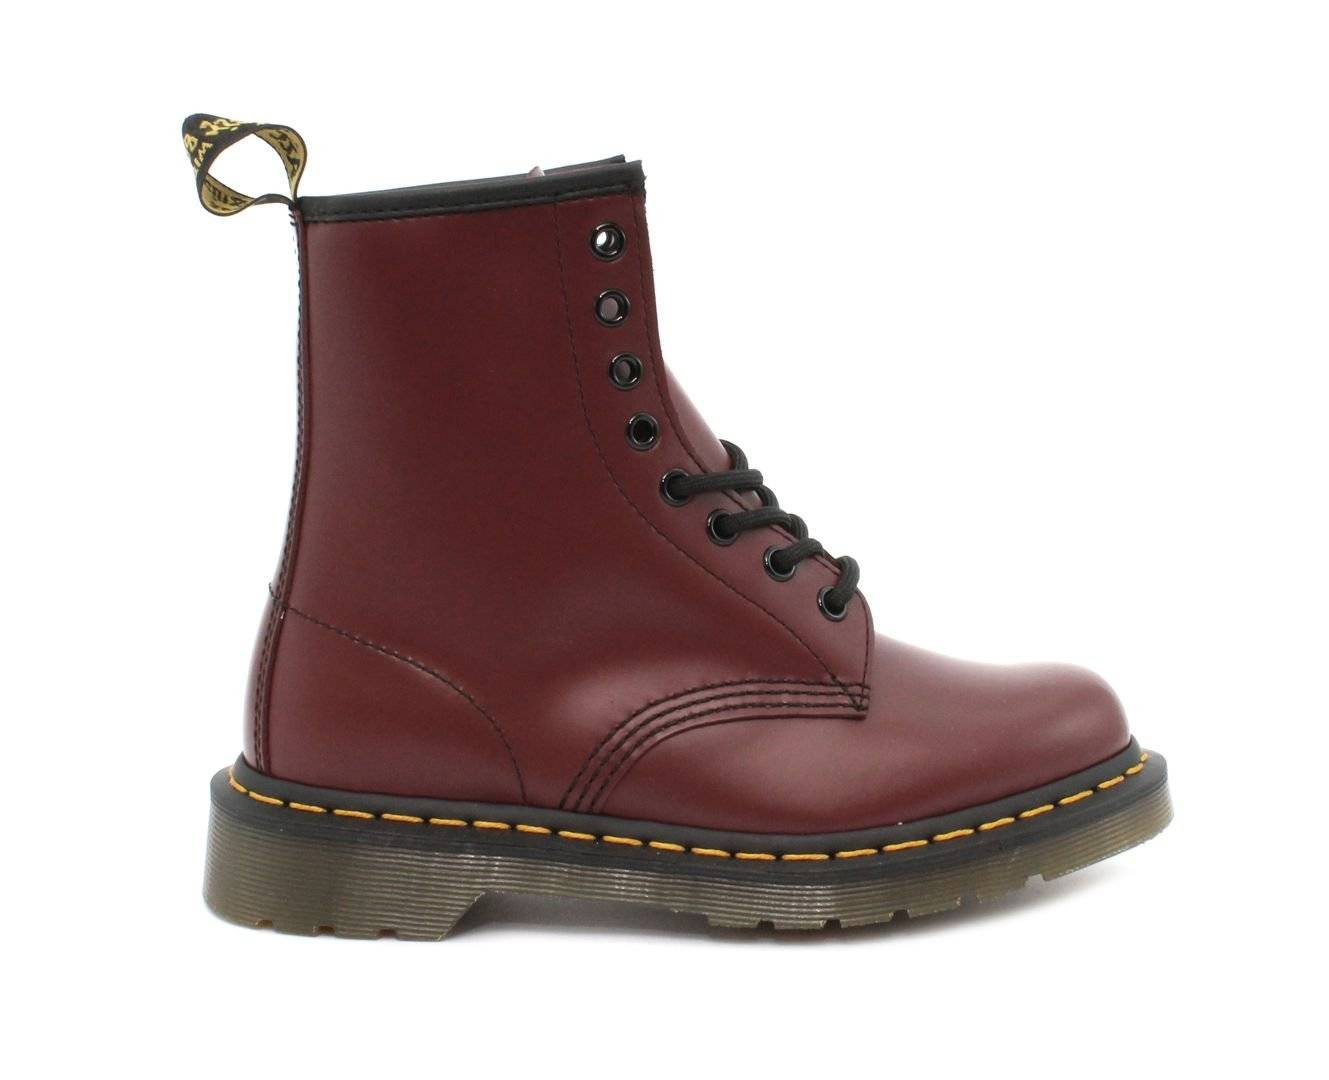 Dr Martens Anfibio DR MARTENS 1460 Cherry Red Smooth 10072600